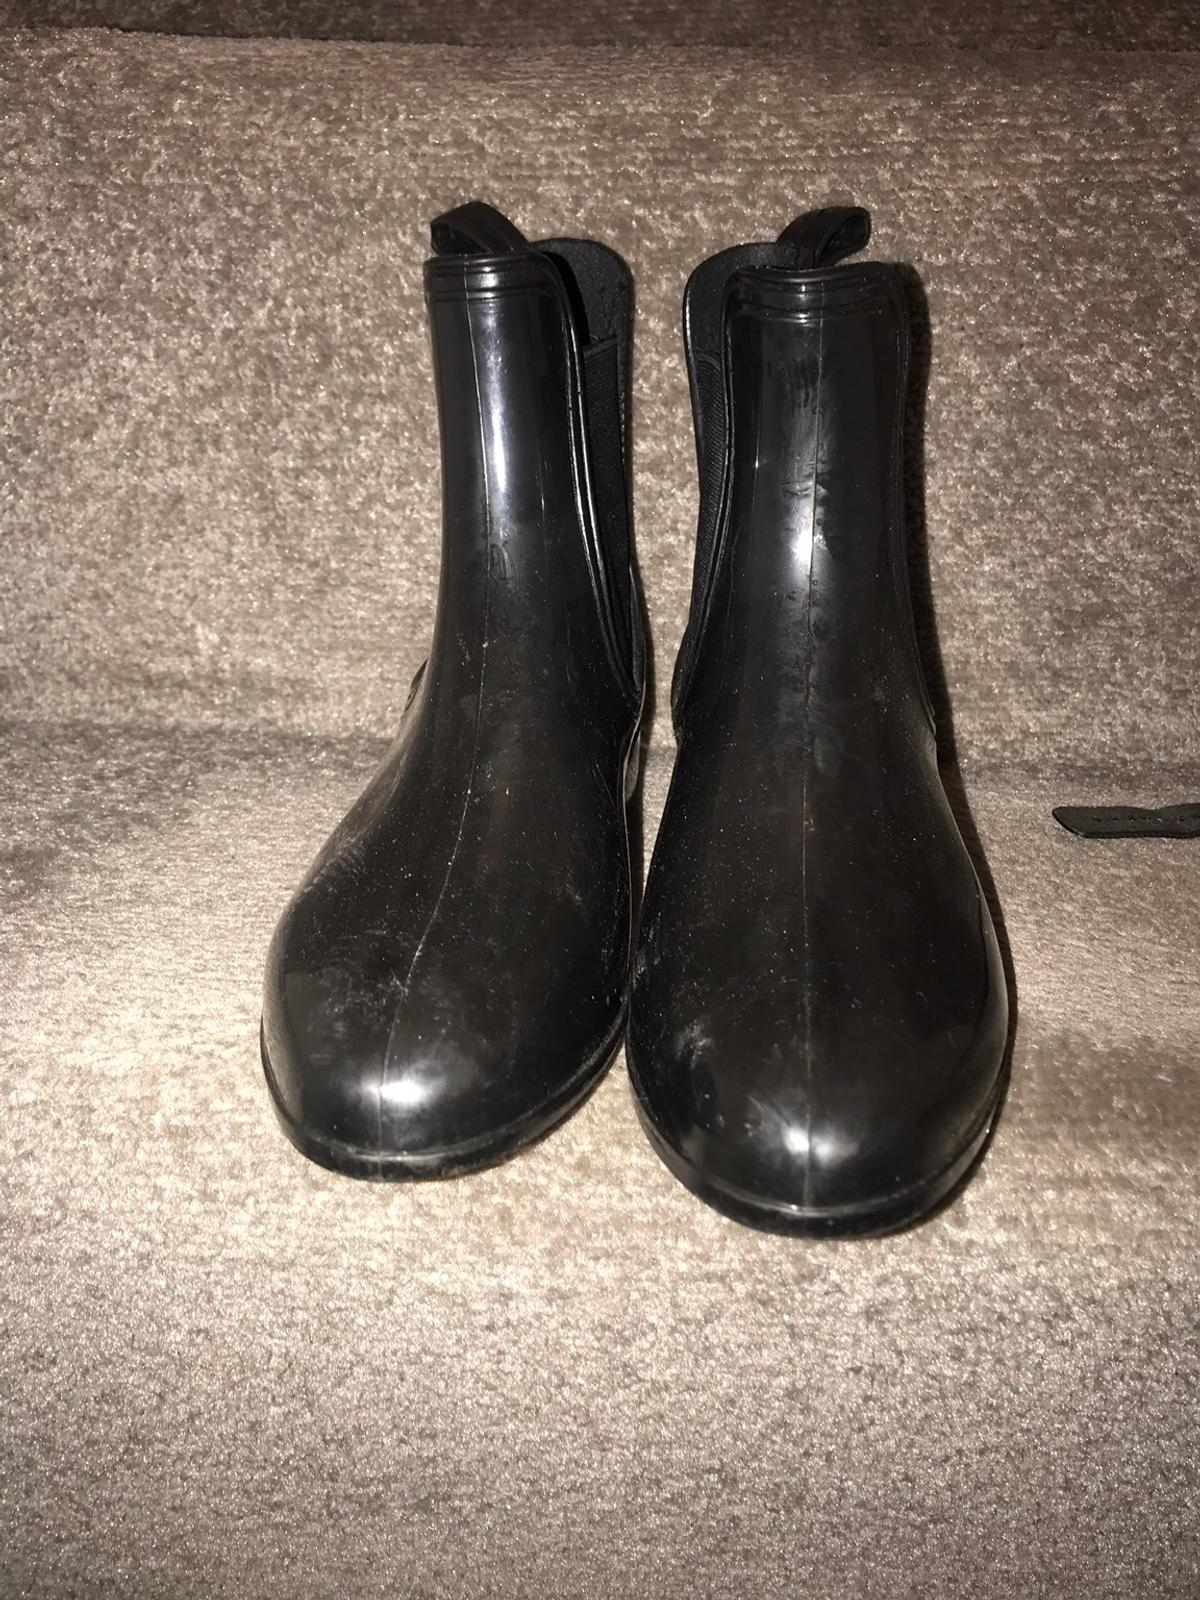 sold worldwide latest design wholesale sales WOMENS wellies size 6